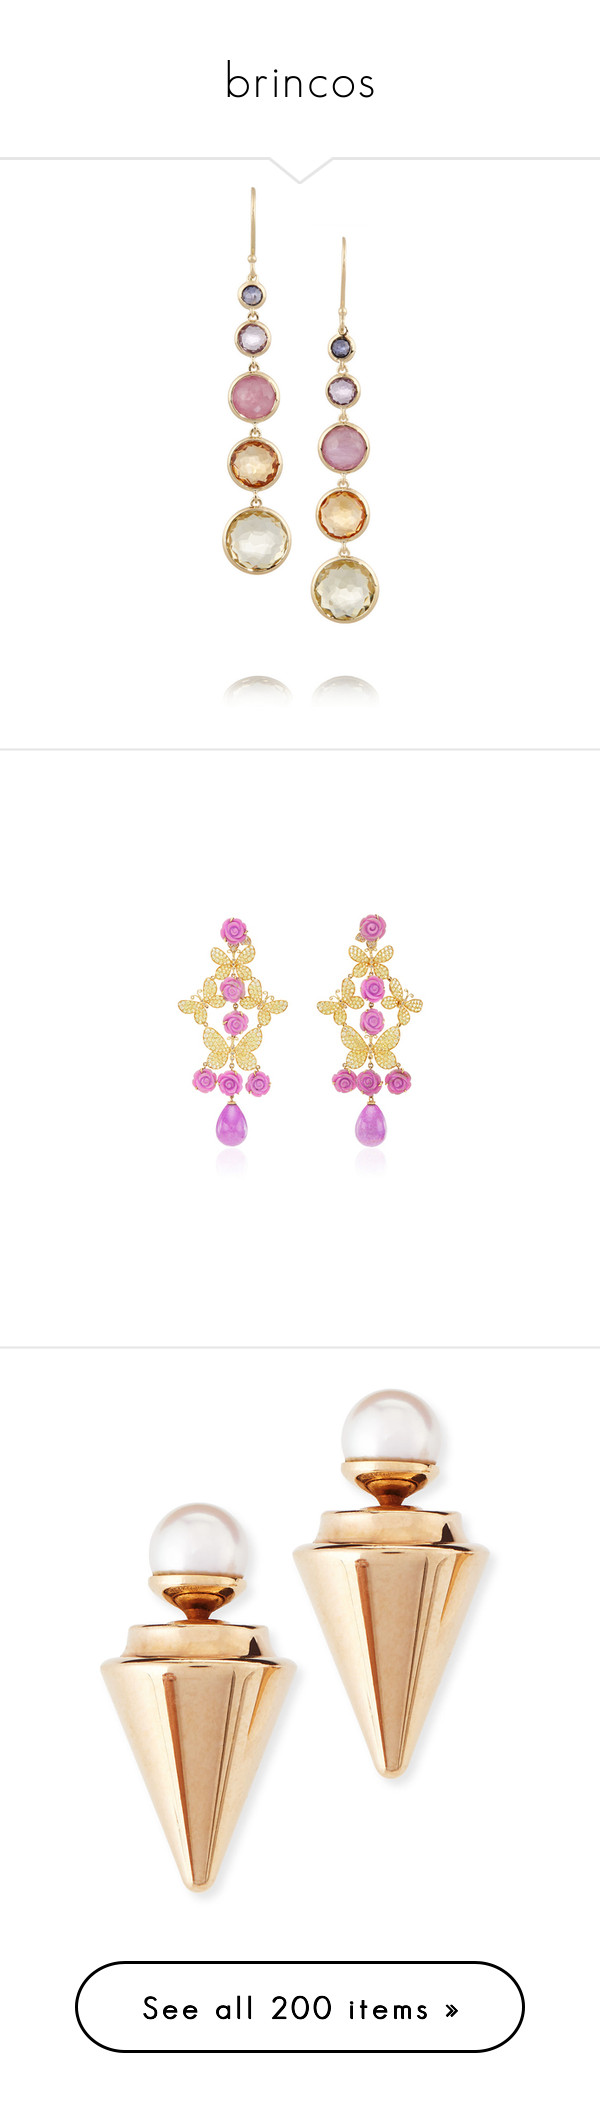 """""""brincos"""" by angelicallxx ❤ liked on Polyvore featuring jewelry, earrings, gold, multi stone earrings, renaissance jewelry, orange earrings, ippolita, rock jewelry, accessories and pearl earrings jewellery"""